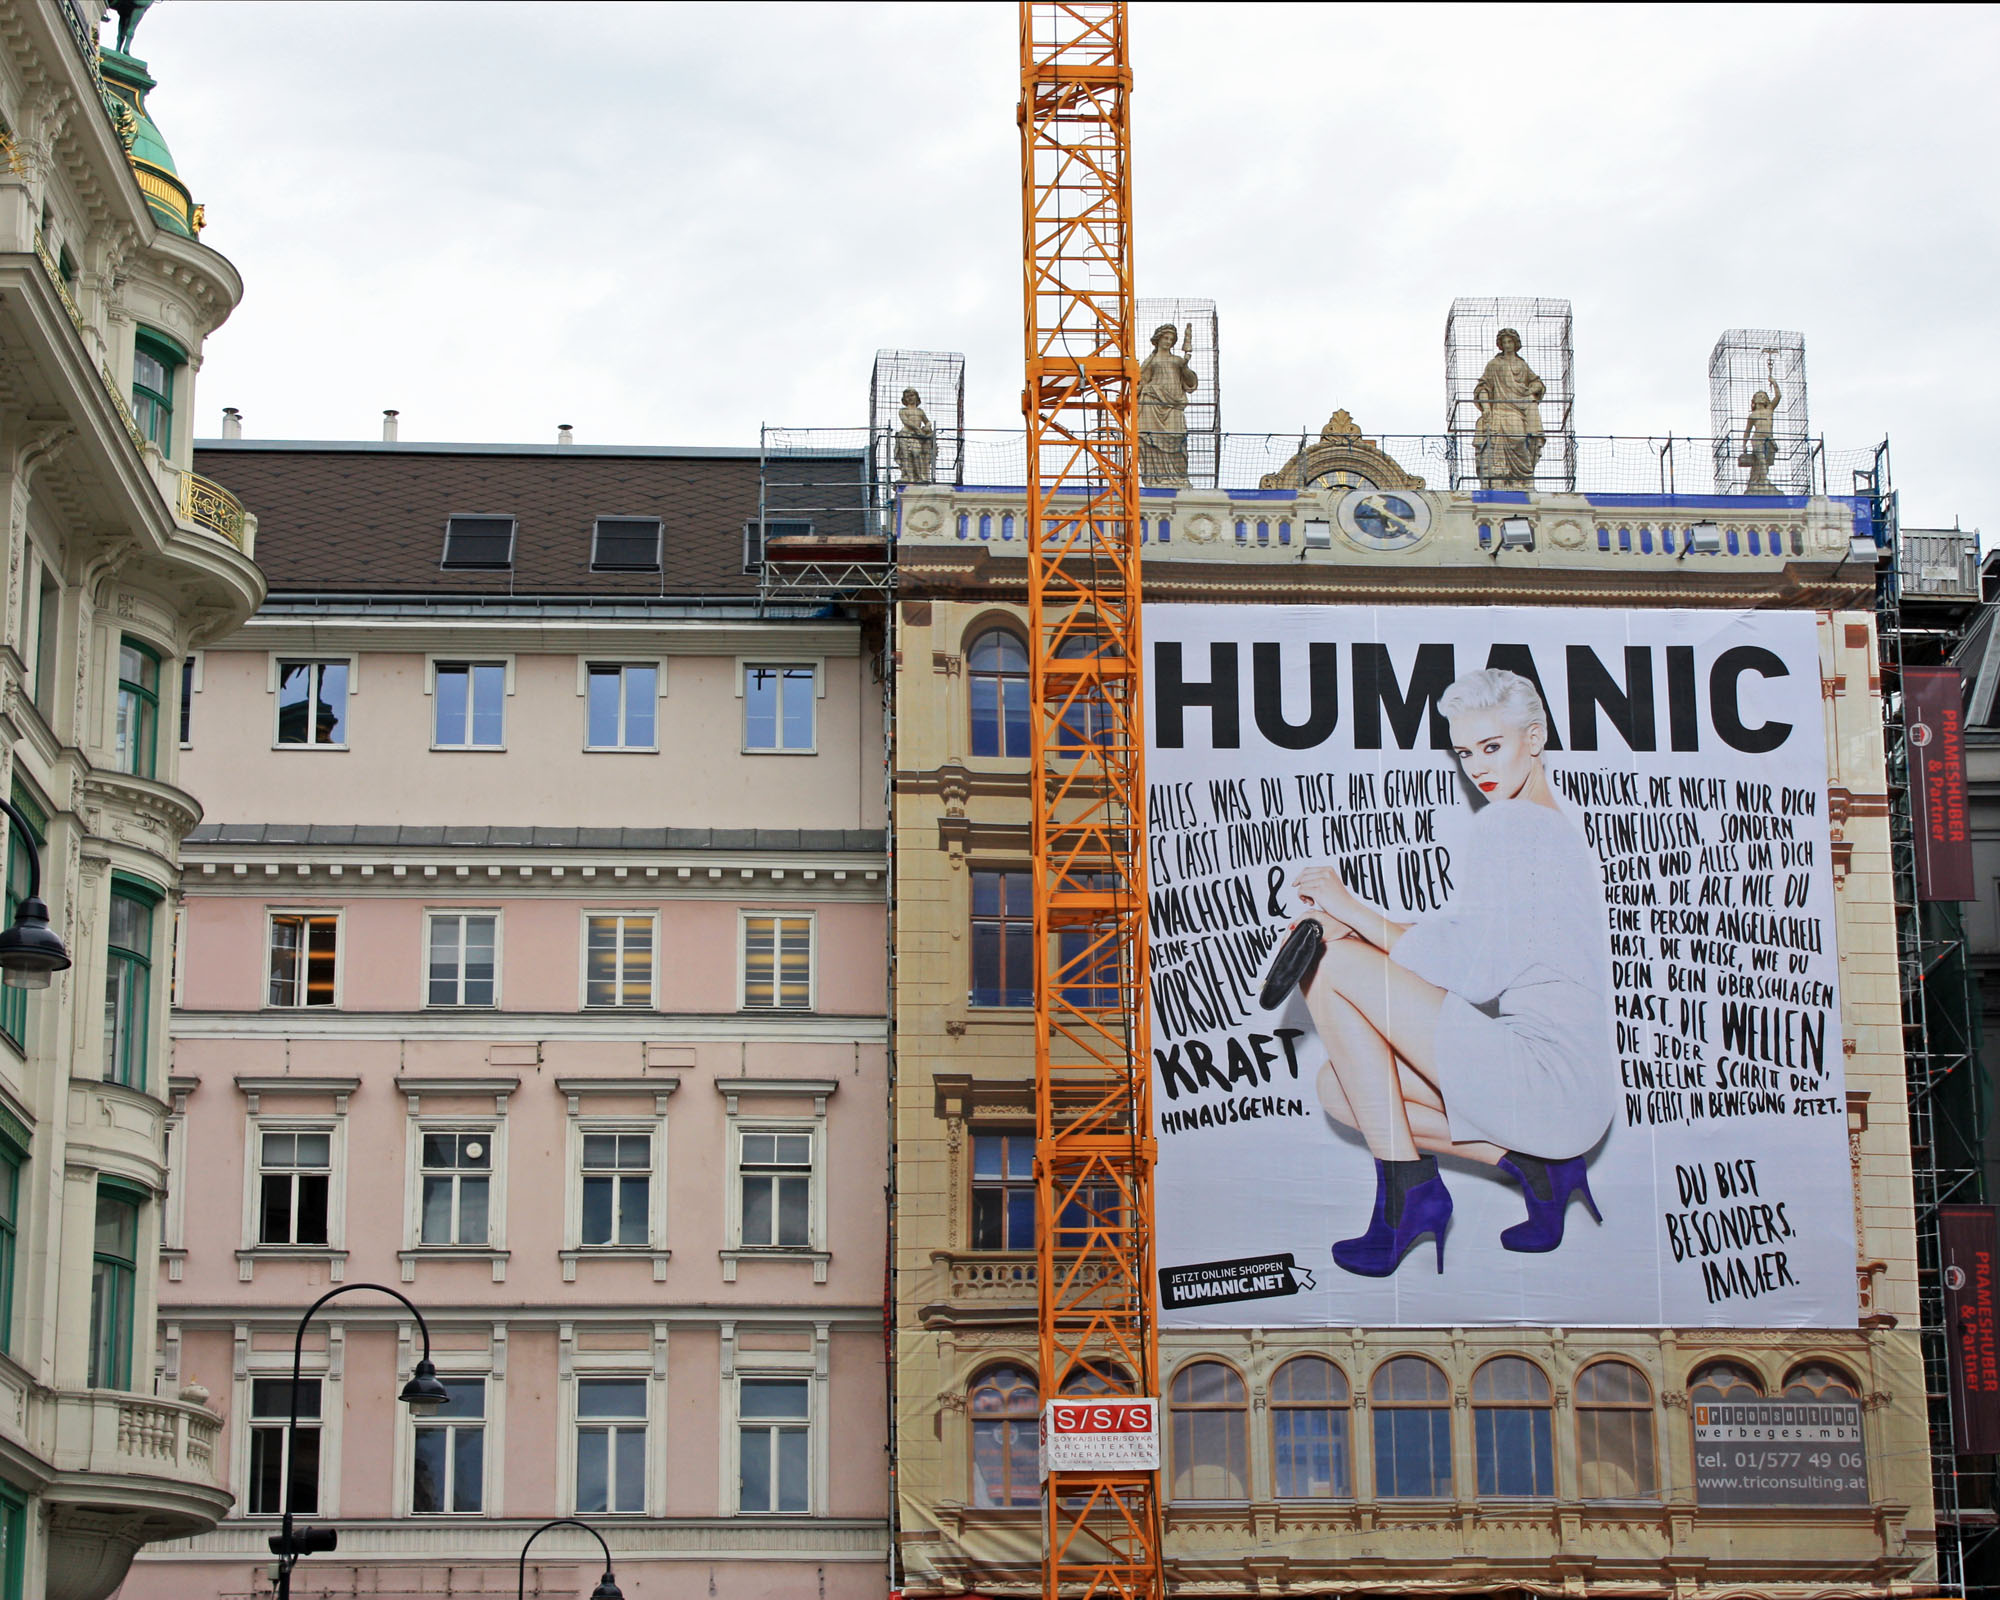 Interesting mural on a building being renovated in Vienna.